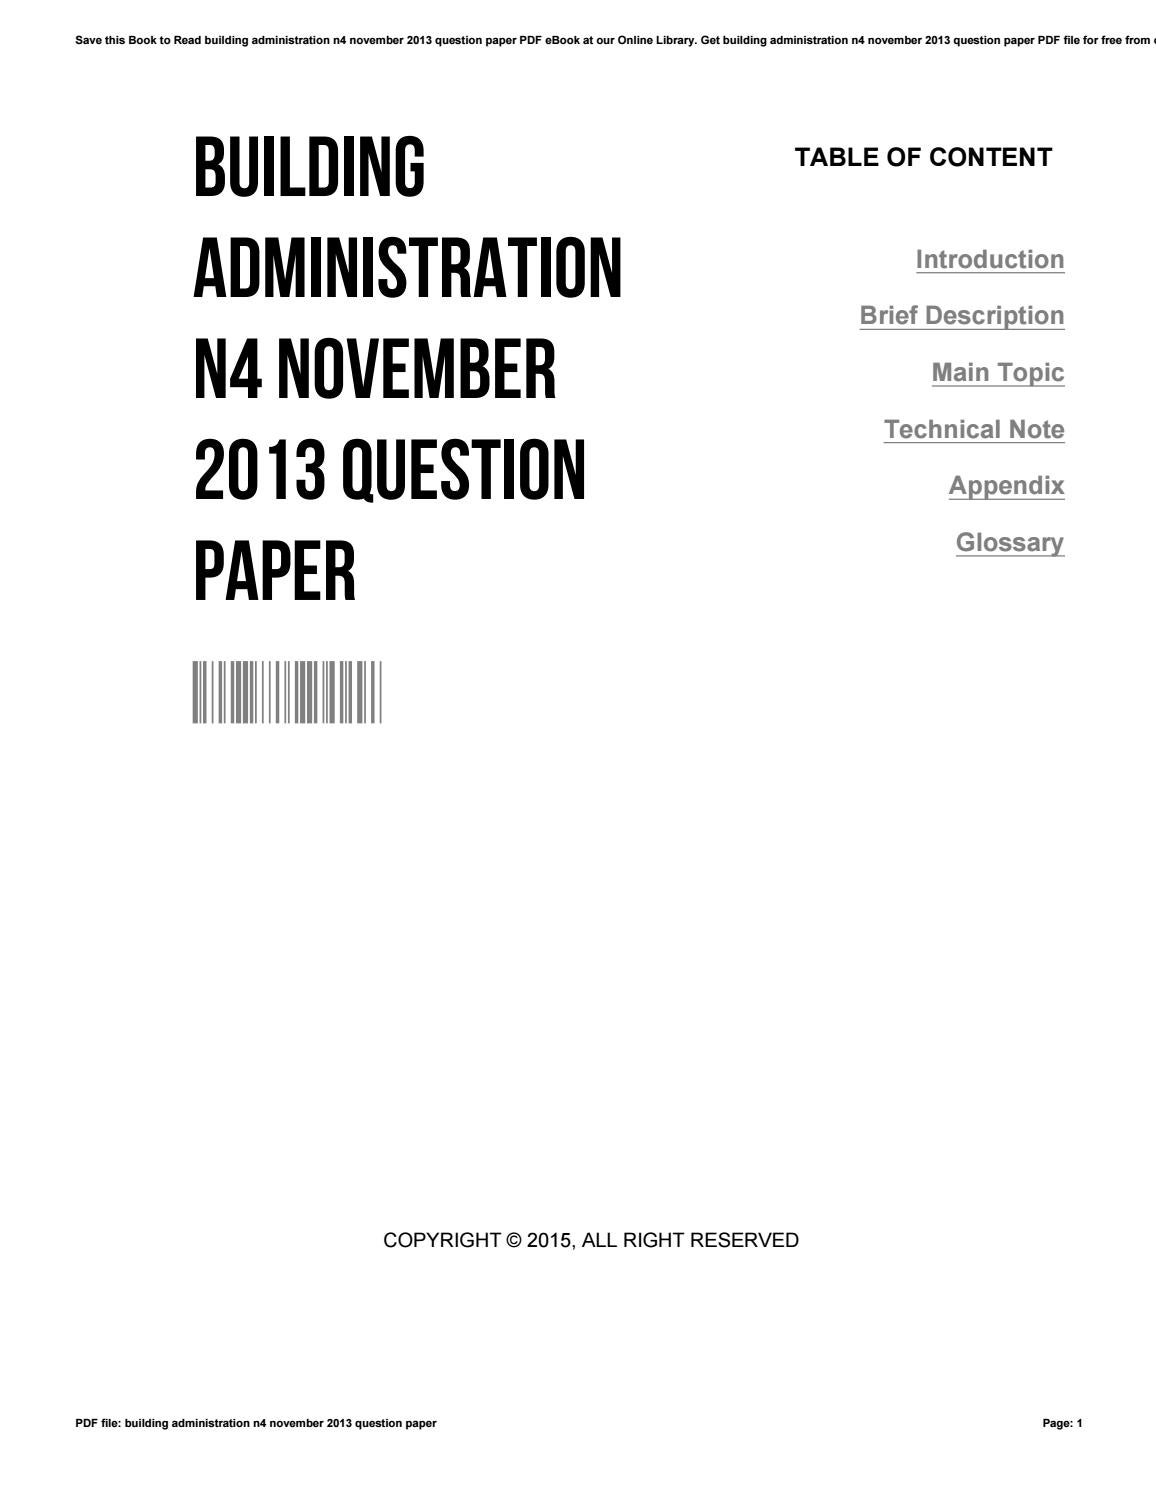 Building administration n4 november 2013 question paper by